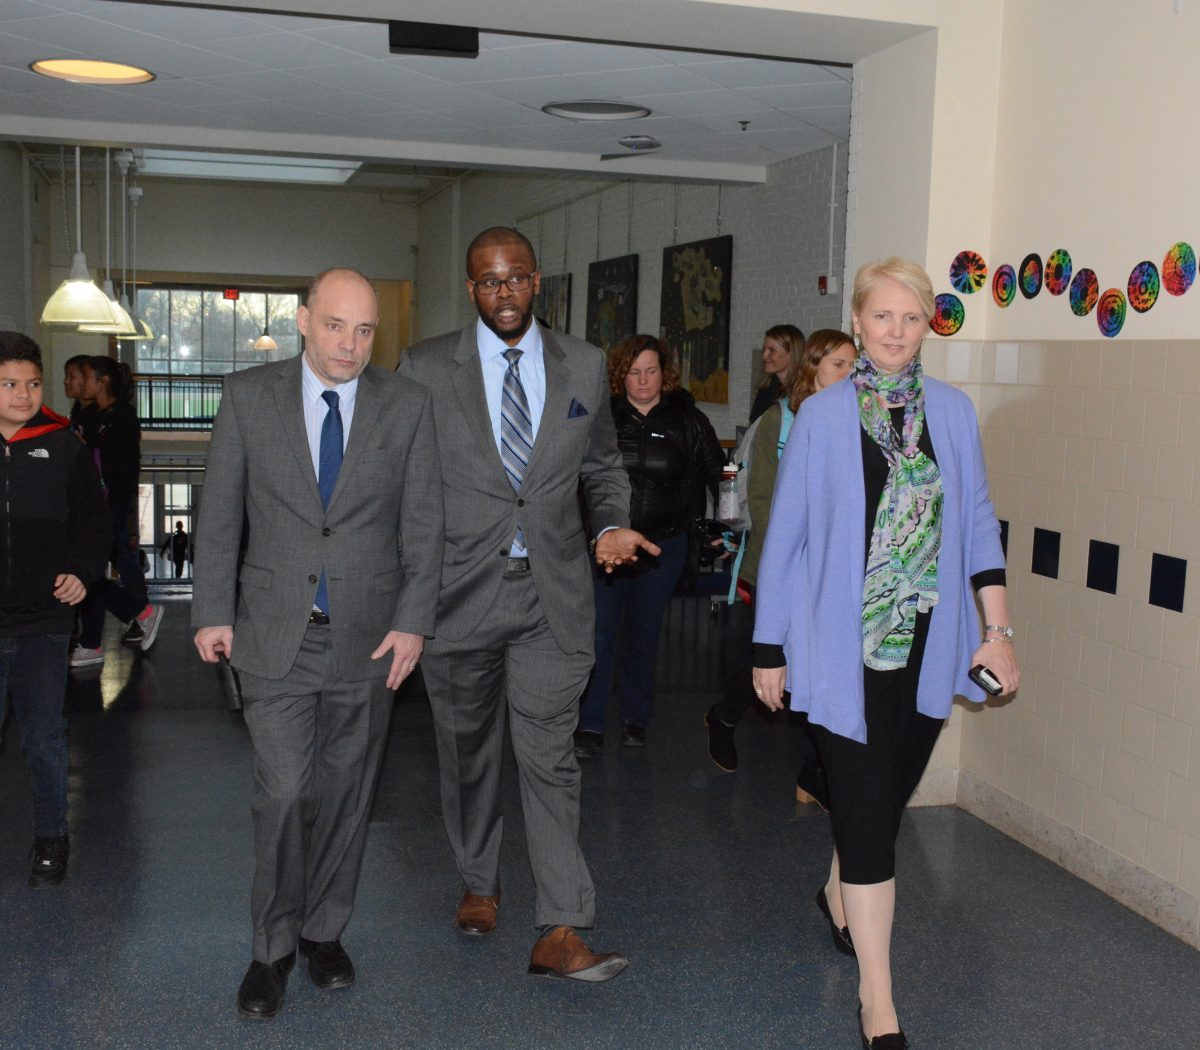 DCPS Chancellor Antwan Wilson arrives at a press conference at Alice Deal Middle School in Northwest on February 1, 2017. /Photo by Roy Lewis